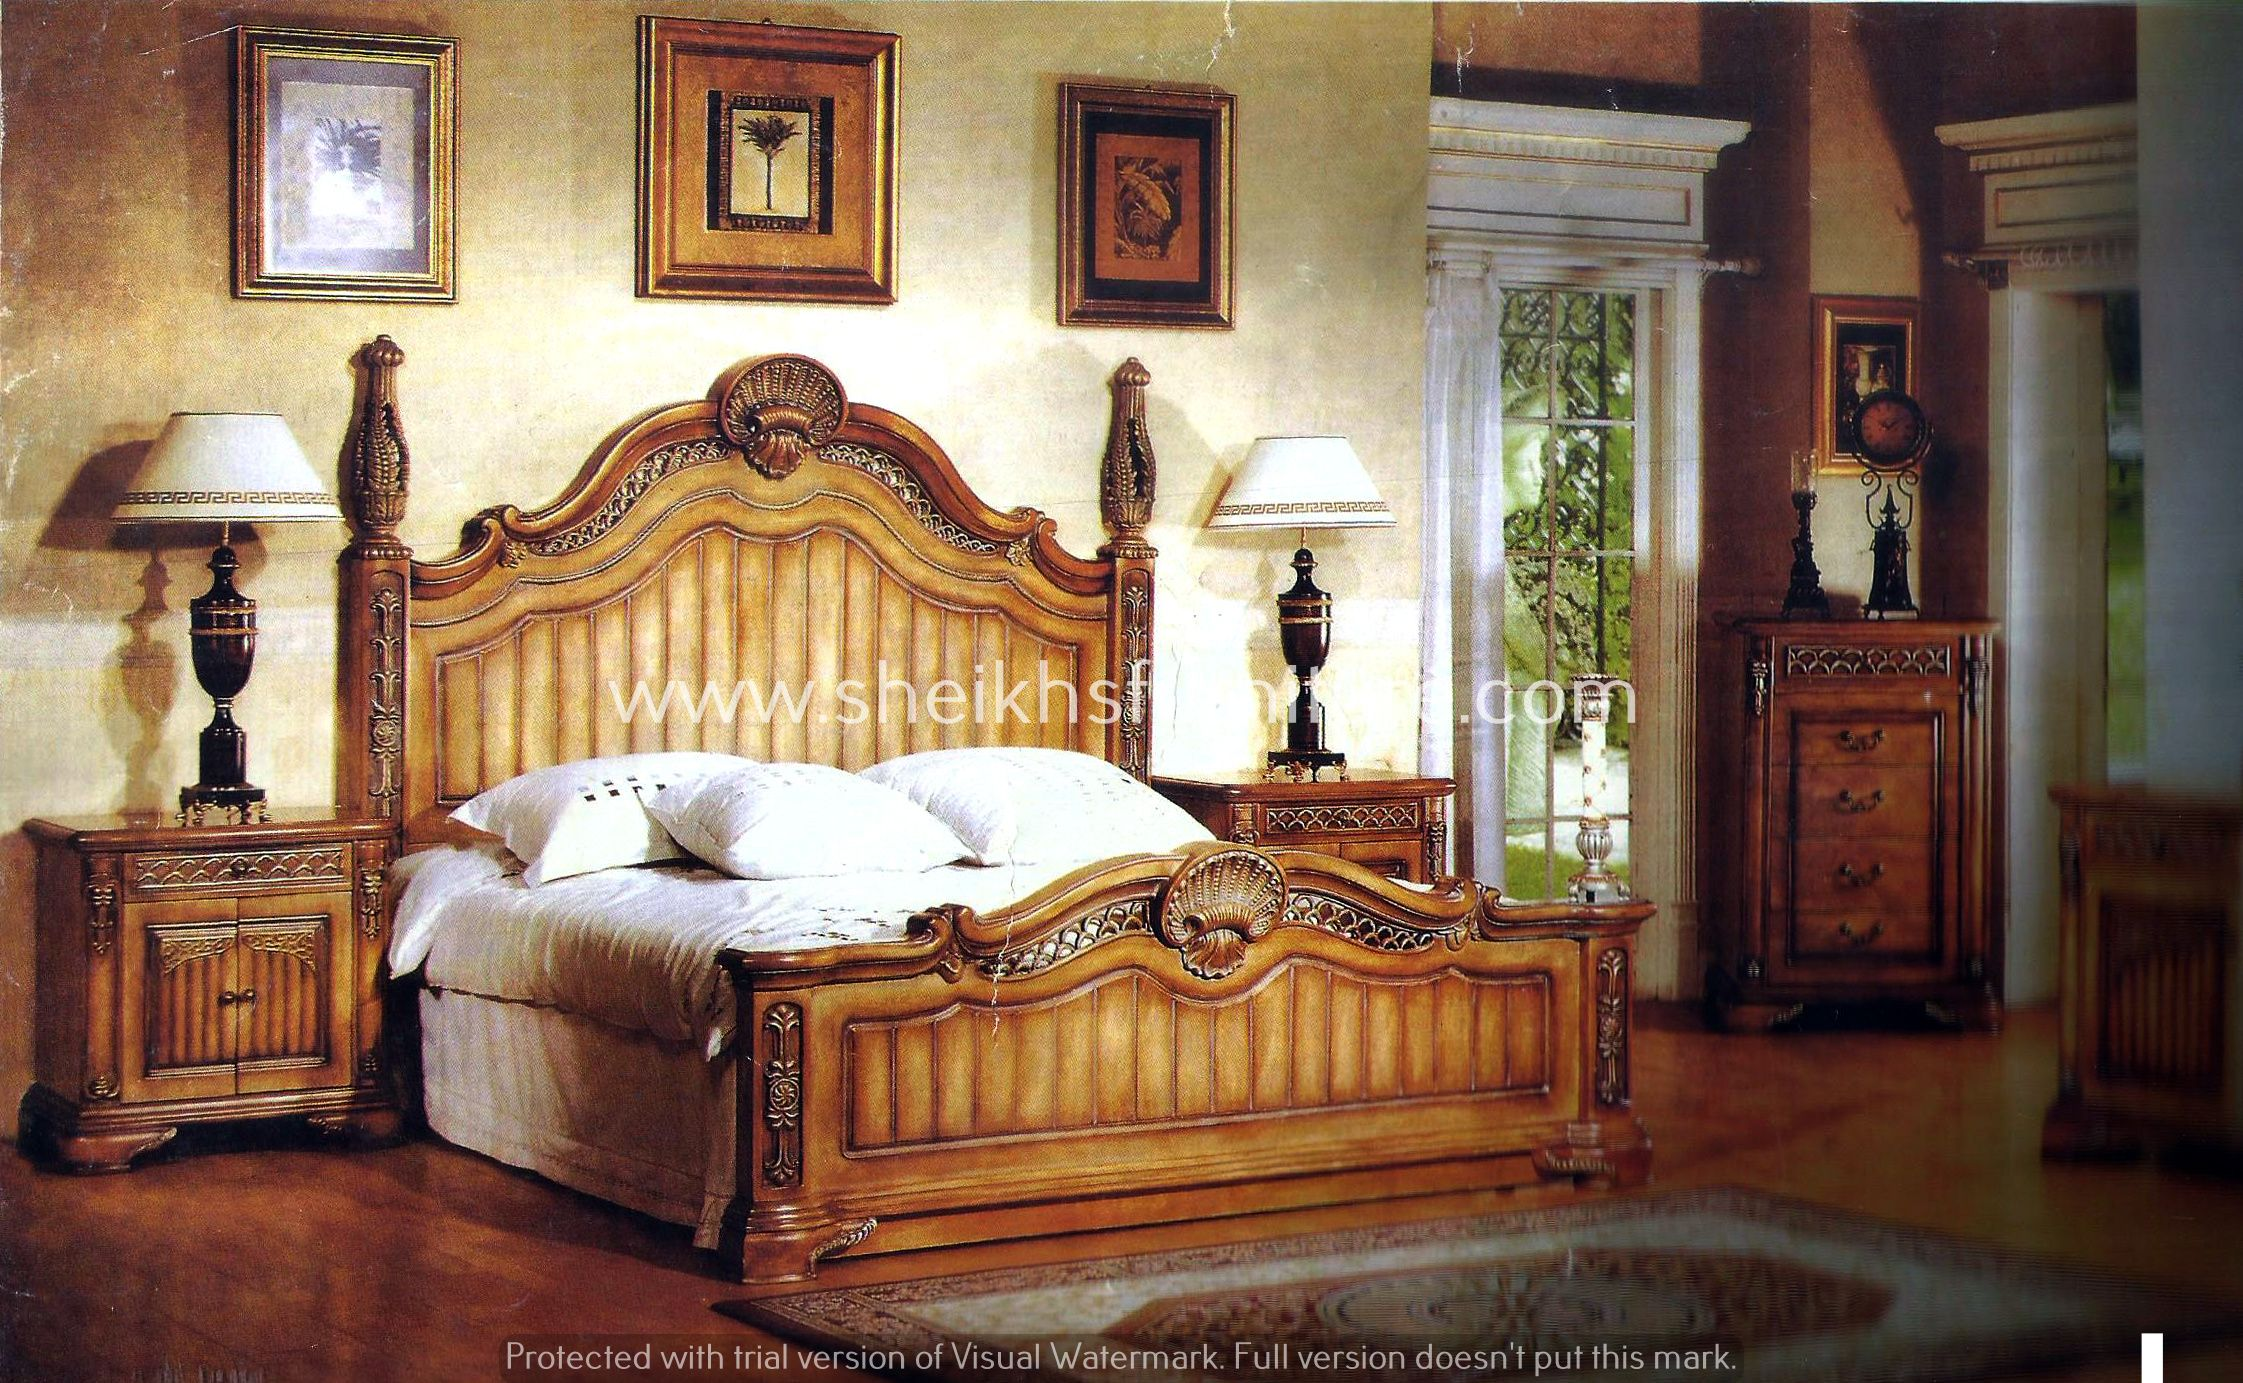 This Is Our Solid Rosewood Bed This Bedroom Set Is Made In Pure Rosewood Sheesham Made In Chiniot Pakistan Thi Wood Sleigh Bed How To Make Bed Bedroom Set